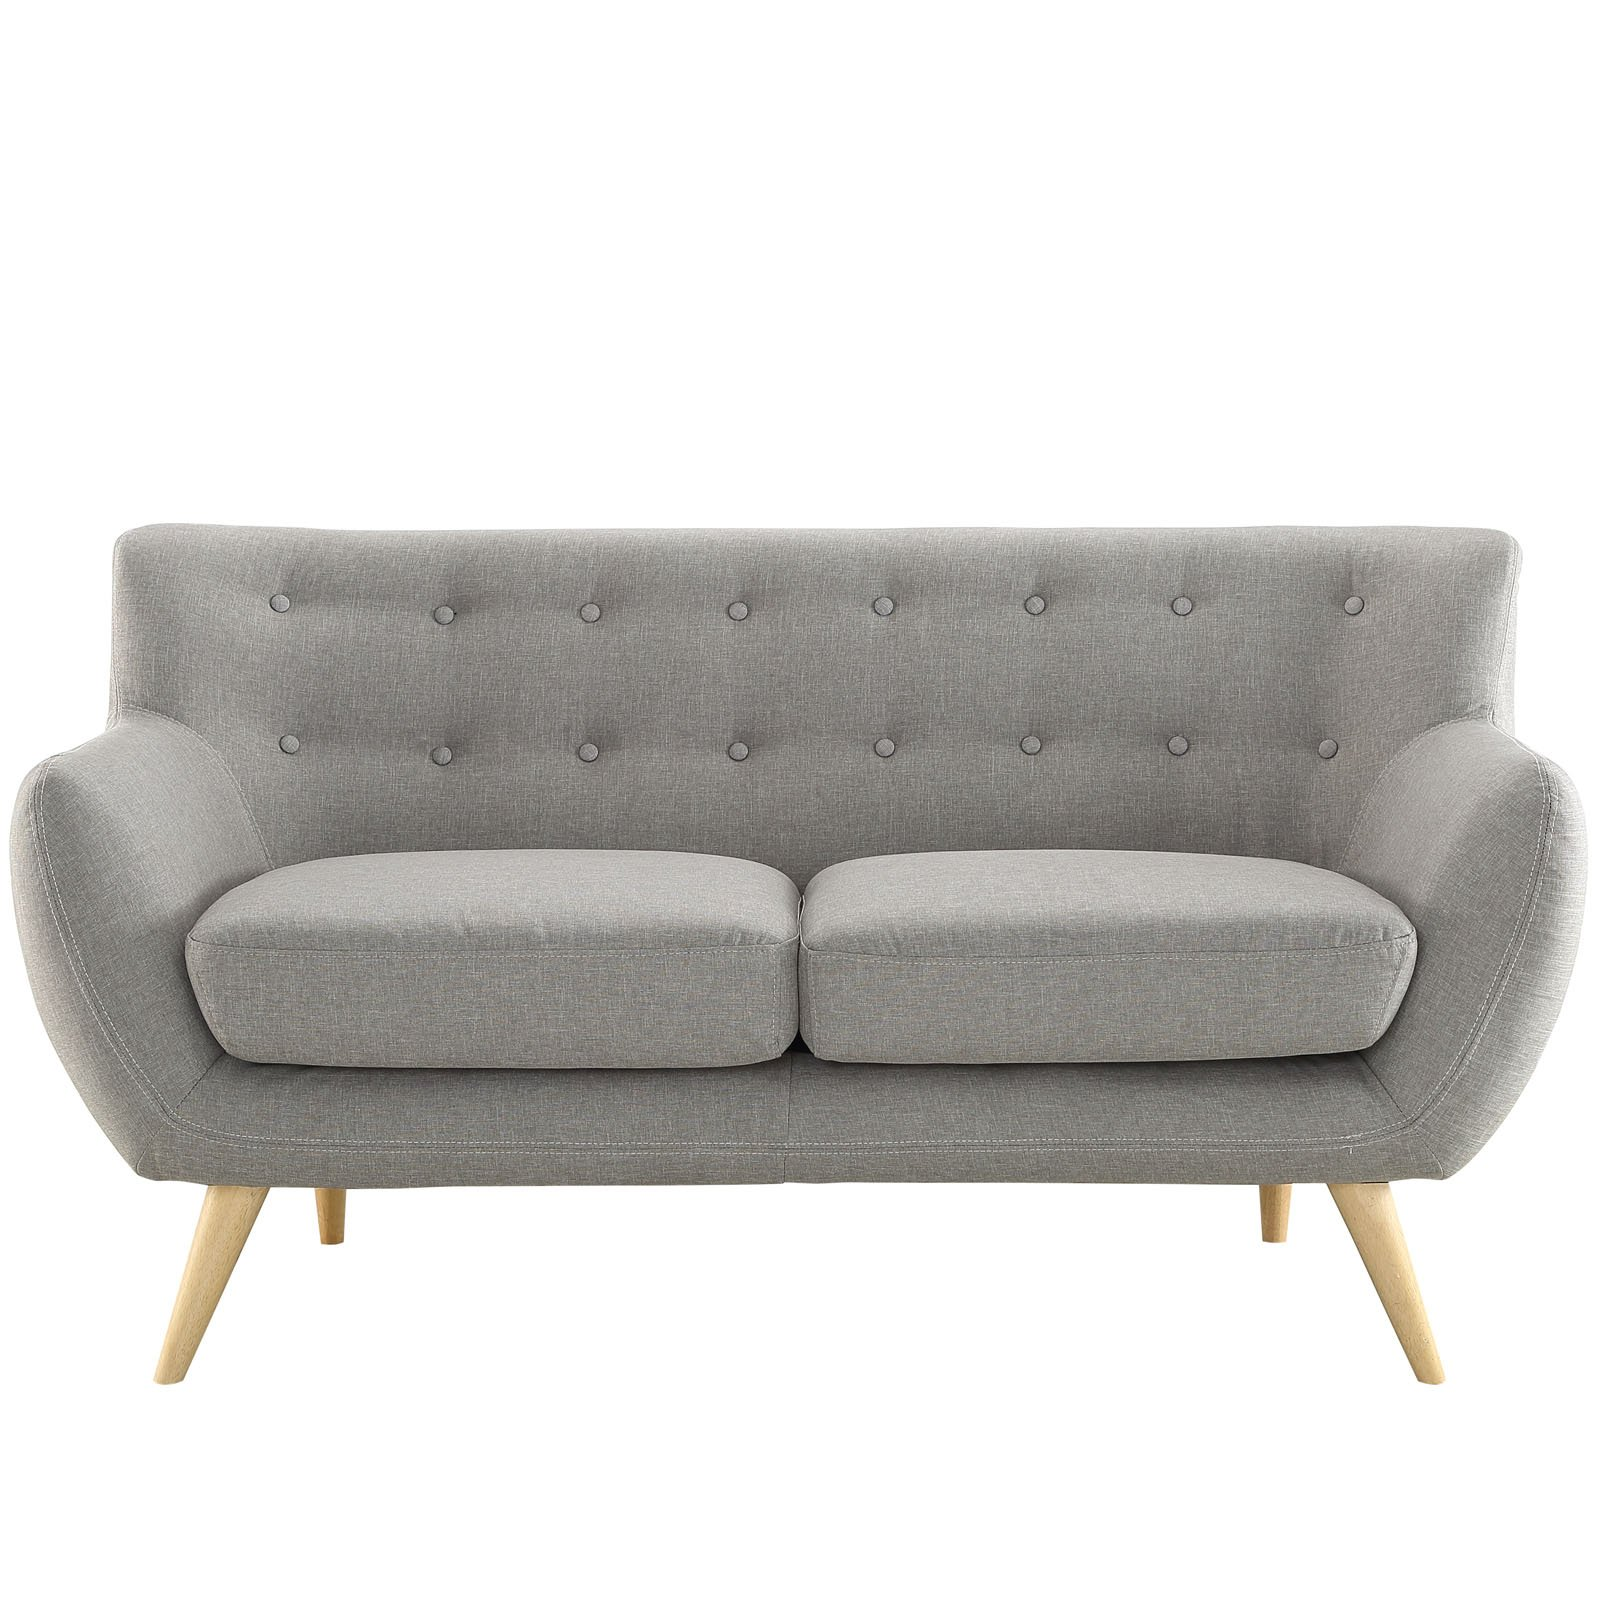 Modway Remark Mid-Century Modern Loveseat With Upholstered Fabric In Light Gray by Modway